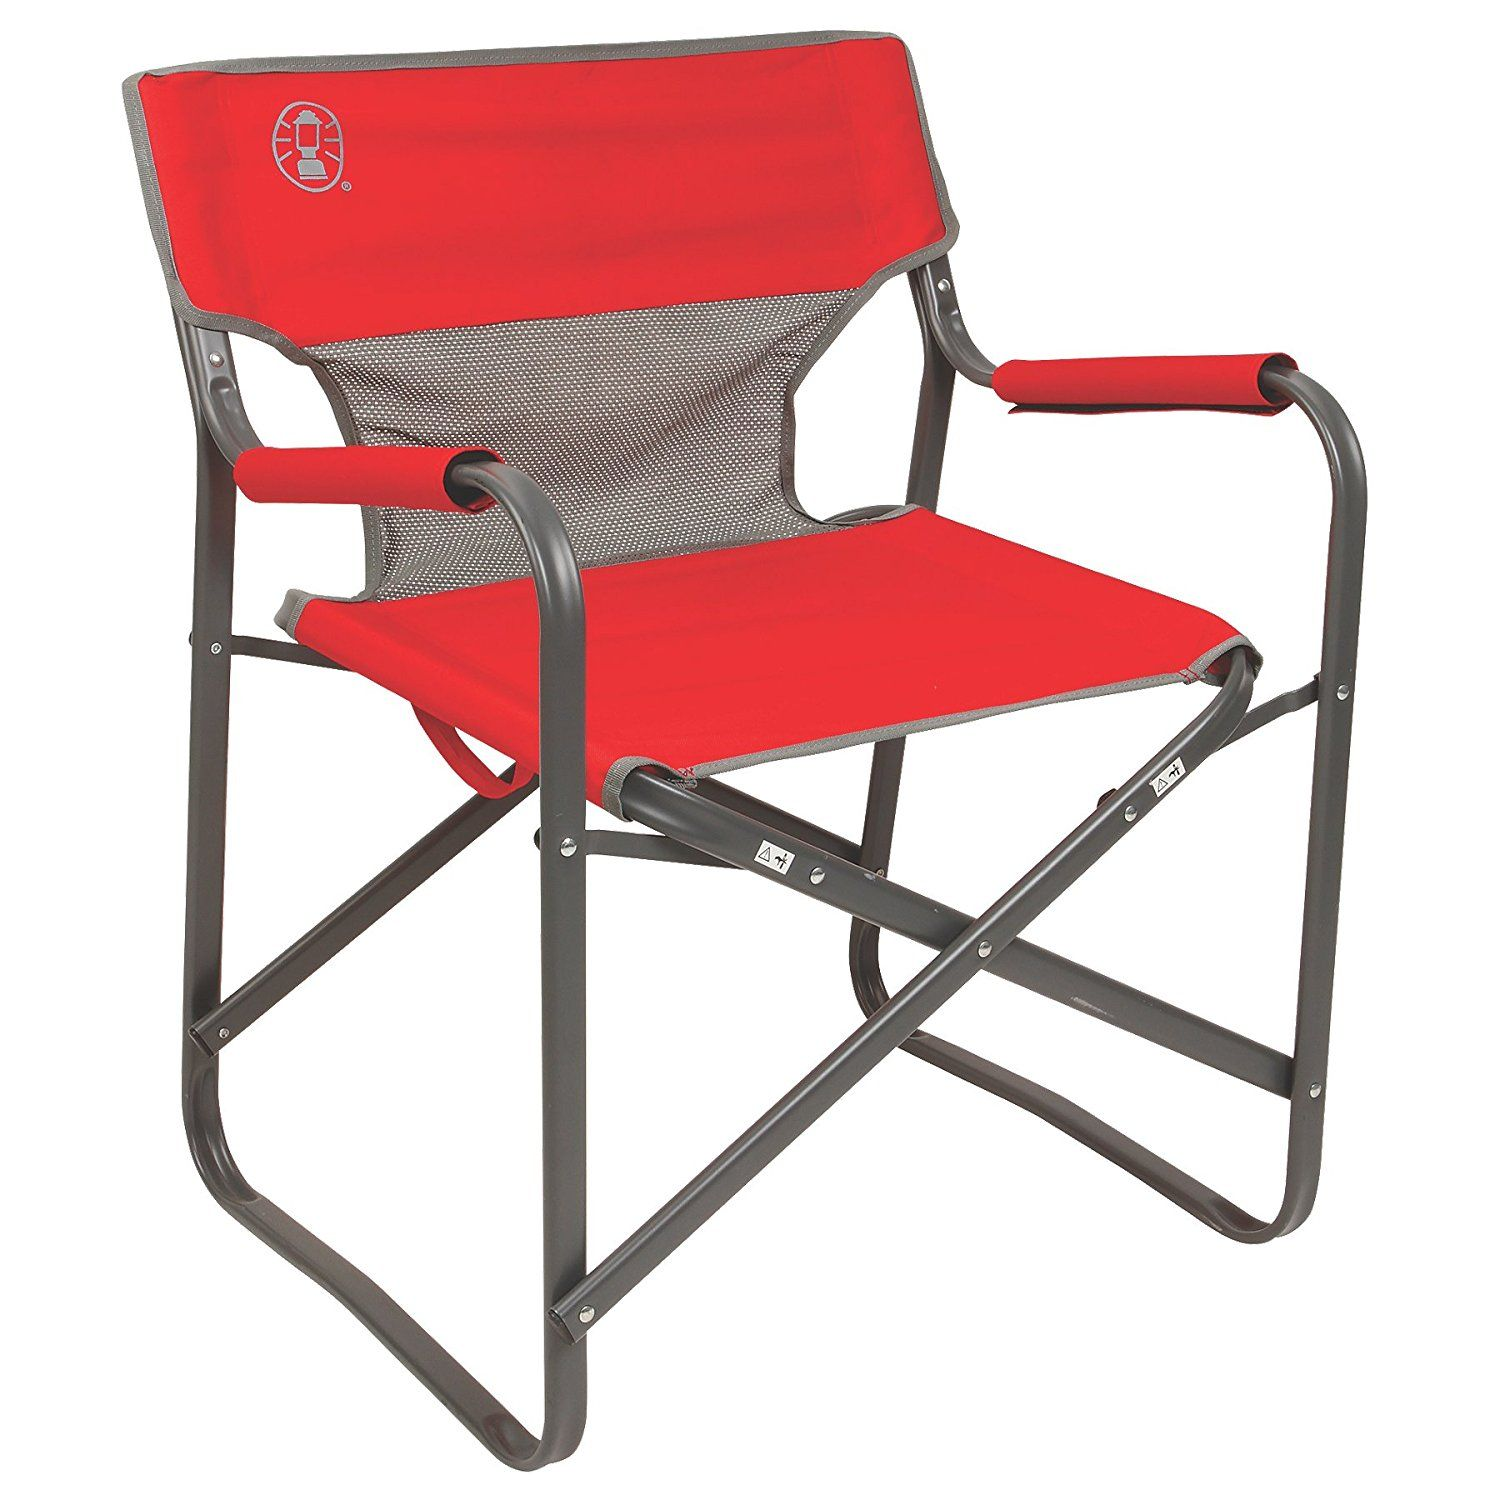 Coleman Outpost Breeze Deck Chair You can more details here